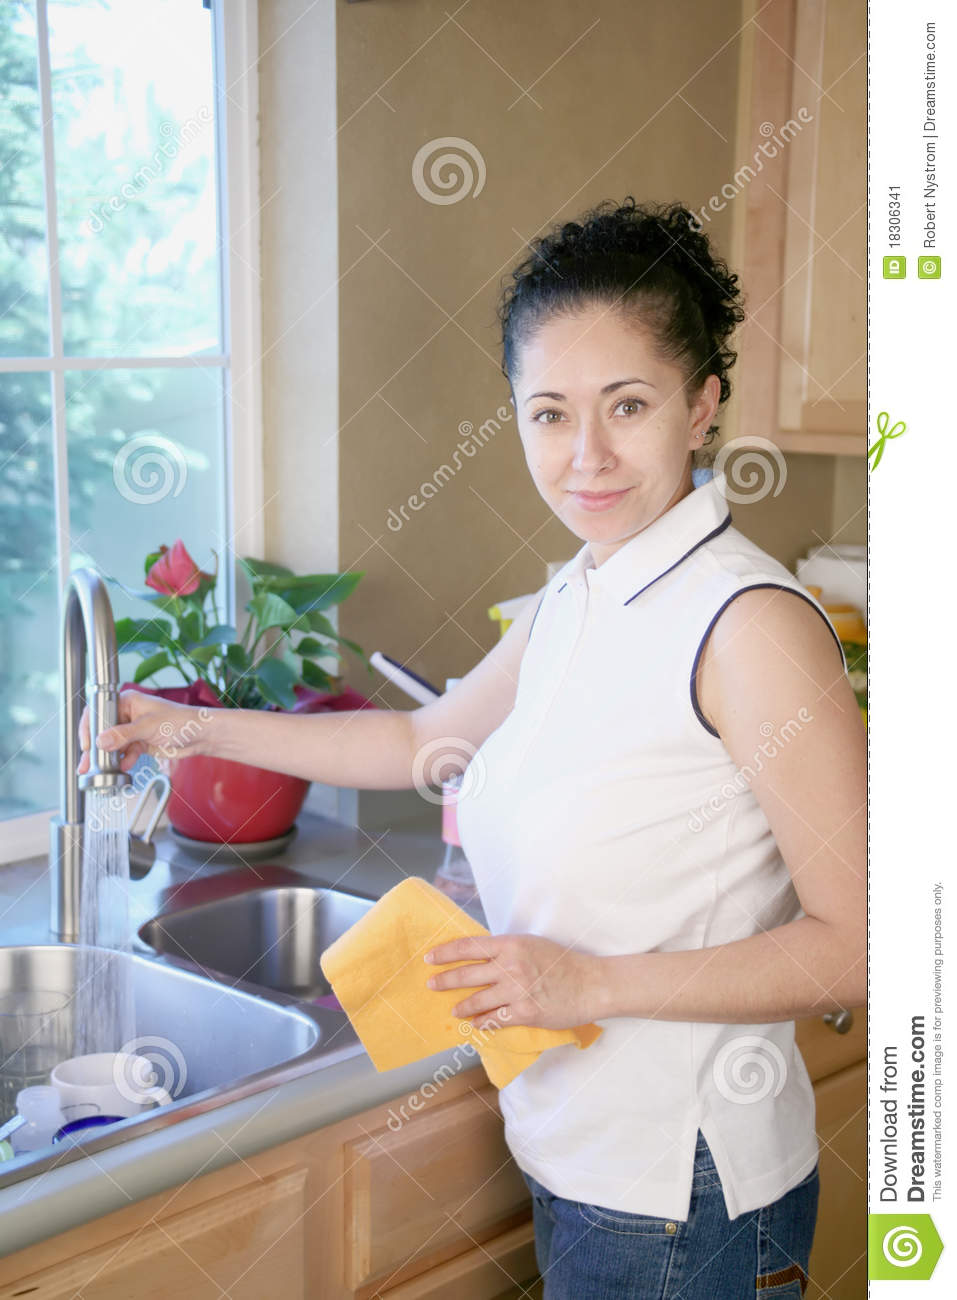 Woman Cleaning In The Kitchen Stock Image Image